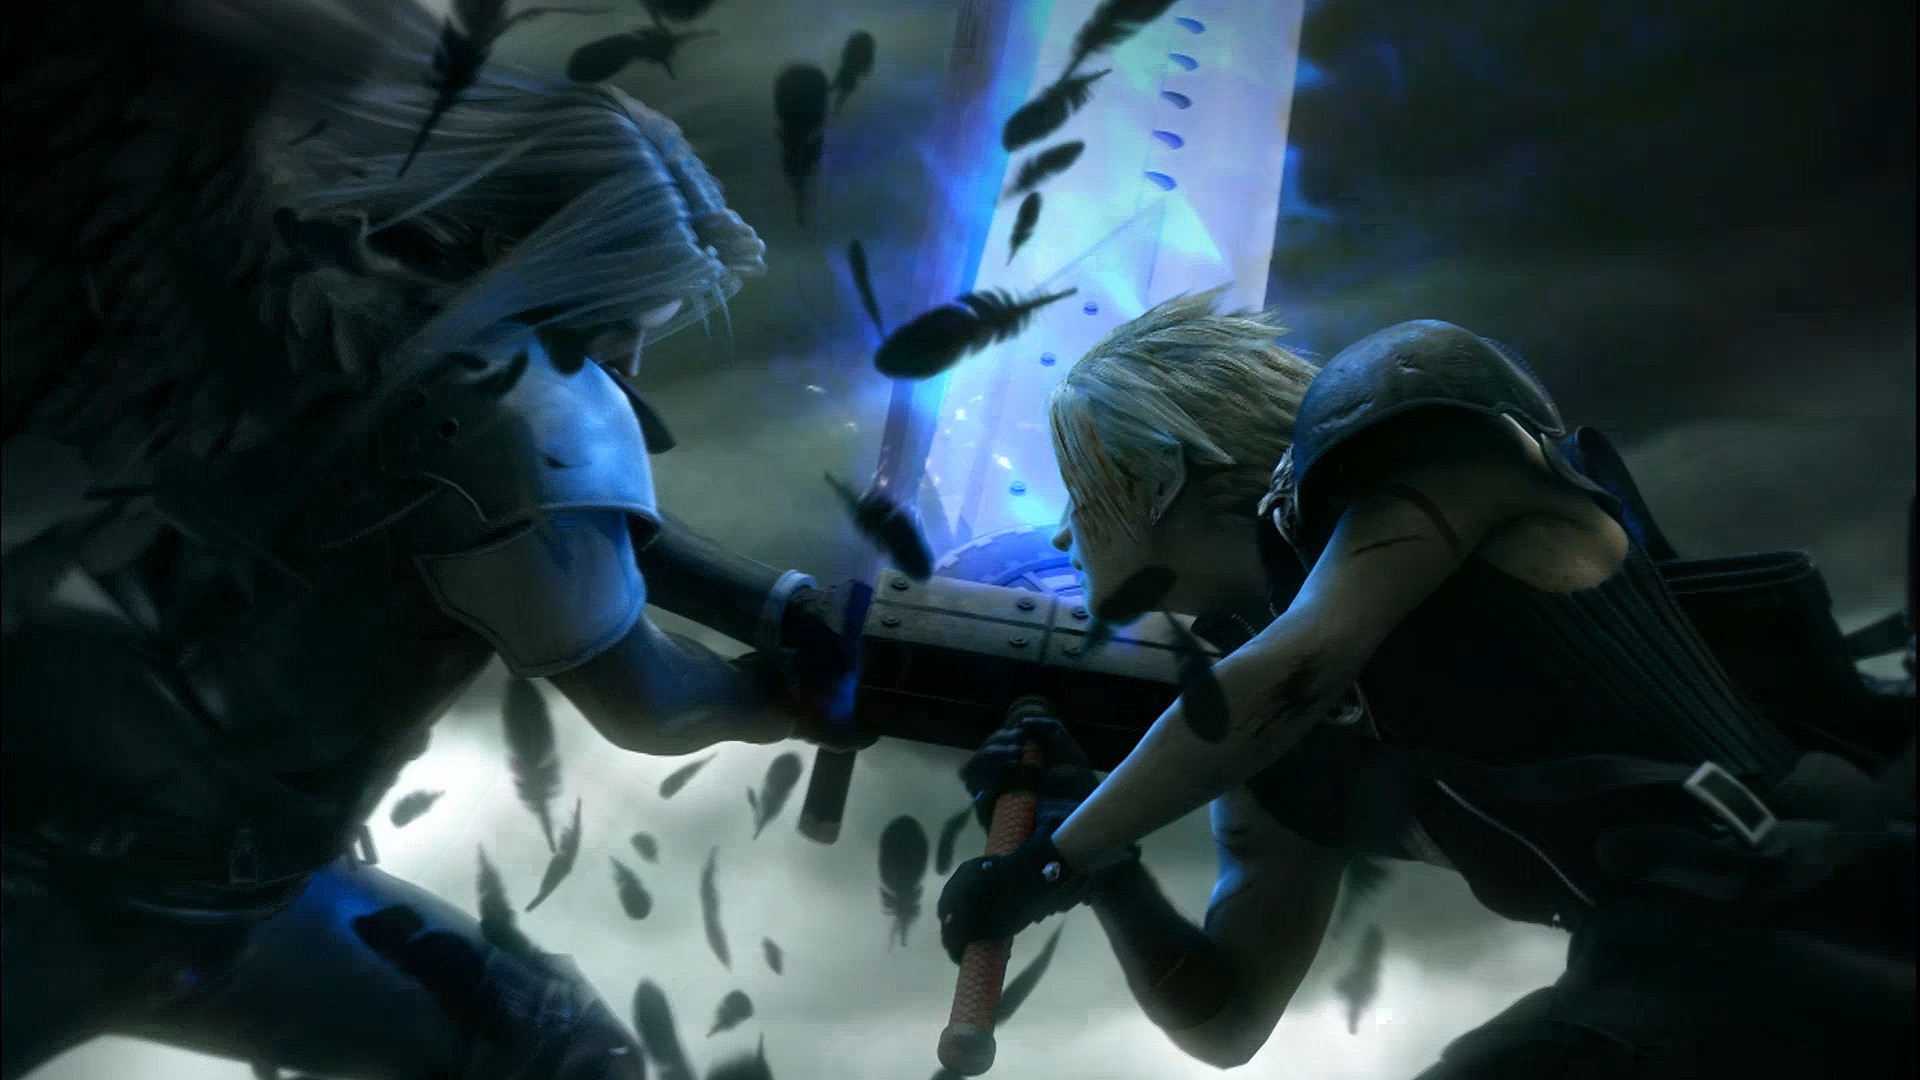 competence/mastery-Final Fantasy was the most epic animation for me. It made